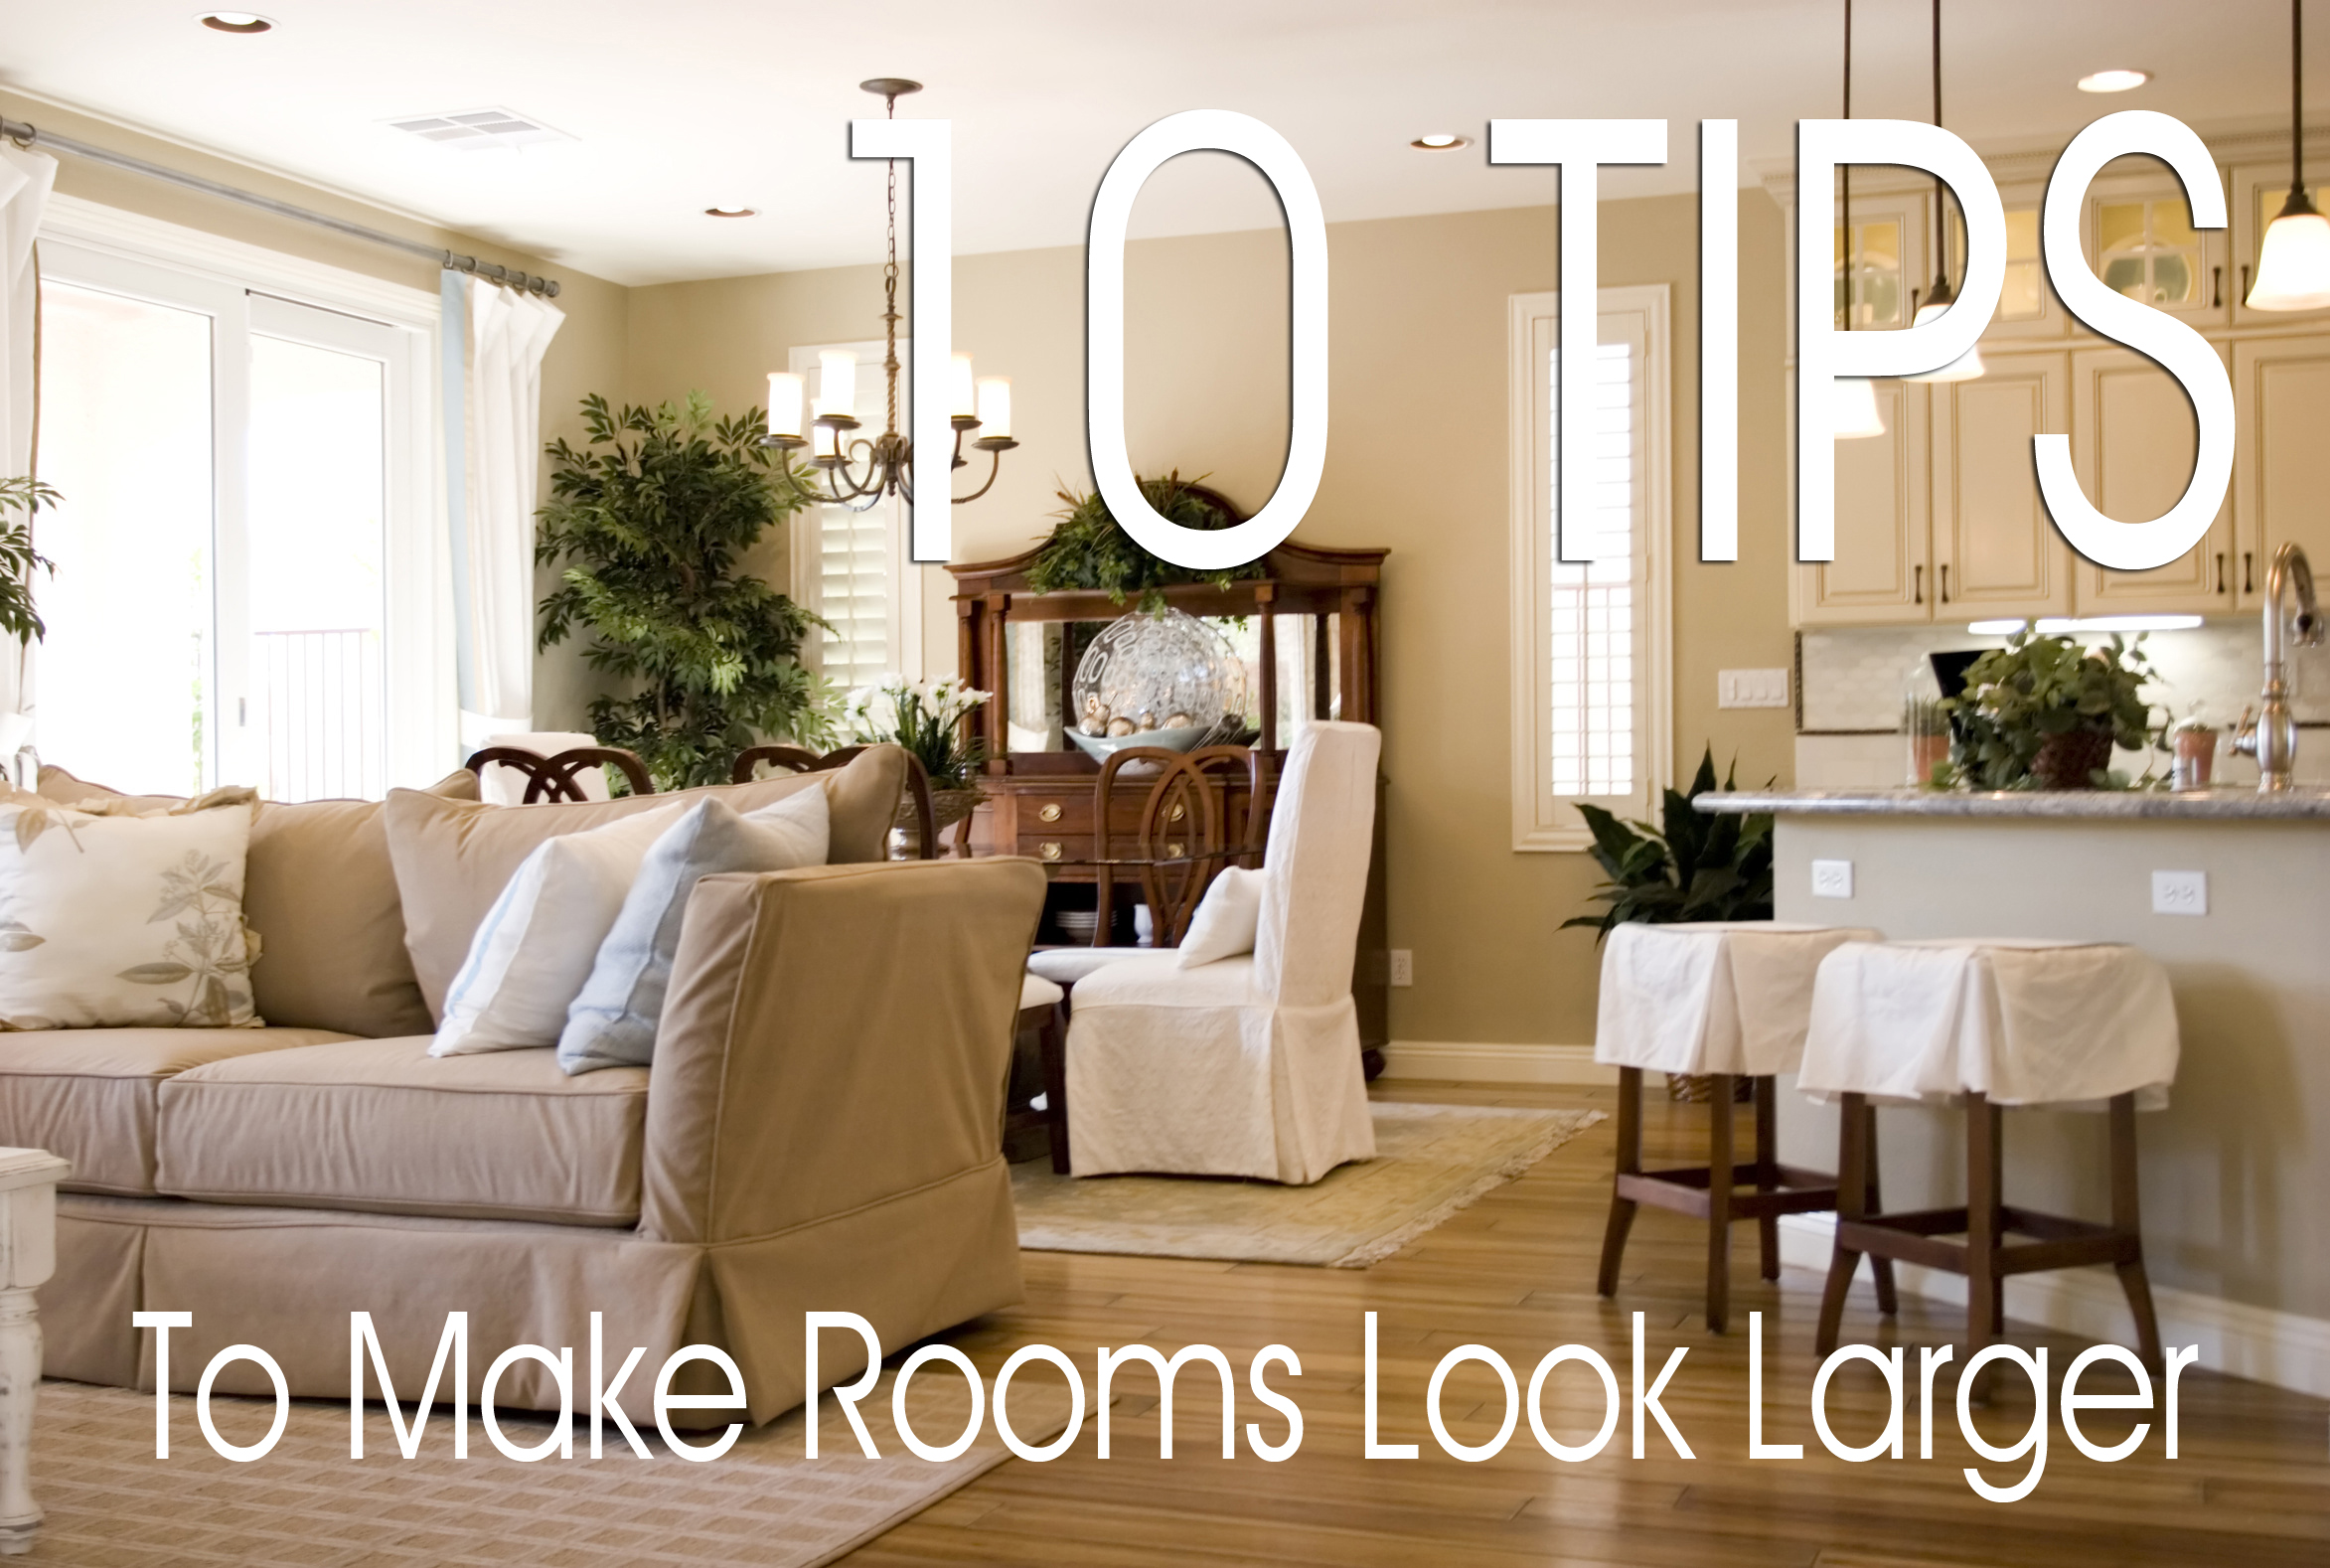 How to make small rooms look larger sibcy cline blog for The make room